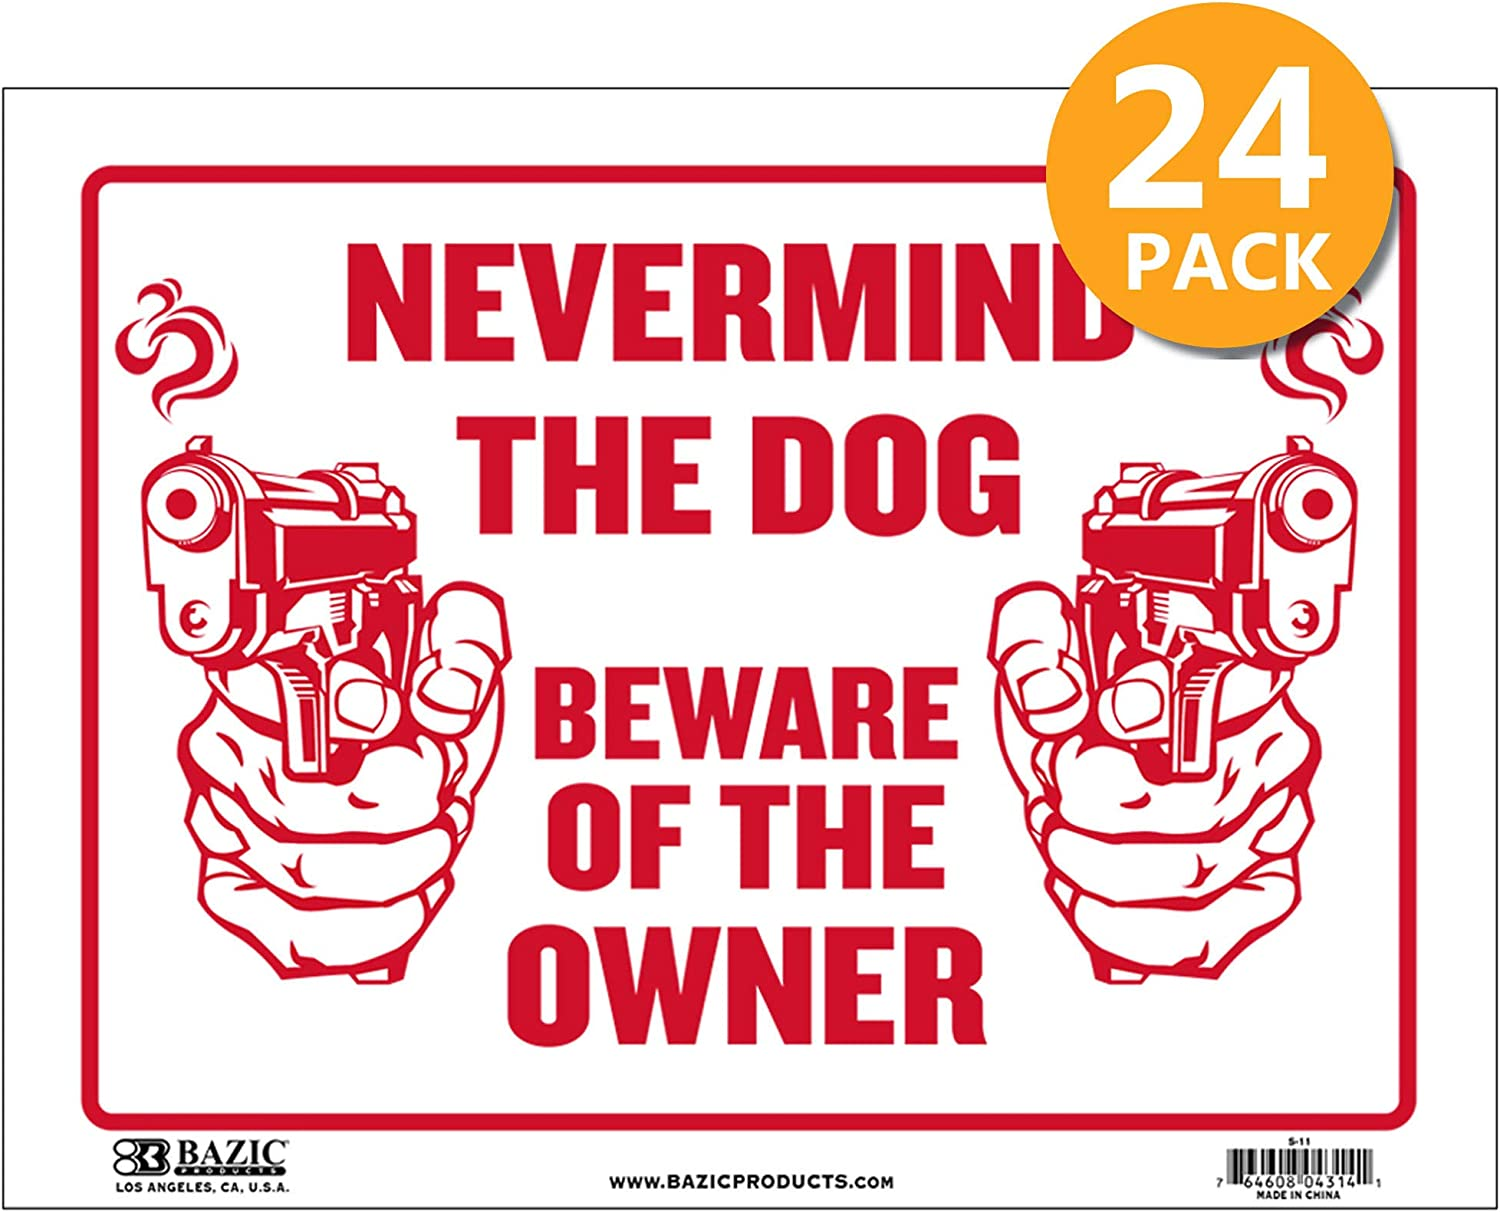 Warning Keep Out Restricted Area Authorized Home Store Plastic Signs BAZIC 9 X 12 Private Property No Trespassing Sign 24-Pack Waterproof Indoor Outdoor Signage on Wall Door Border